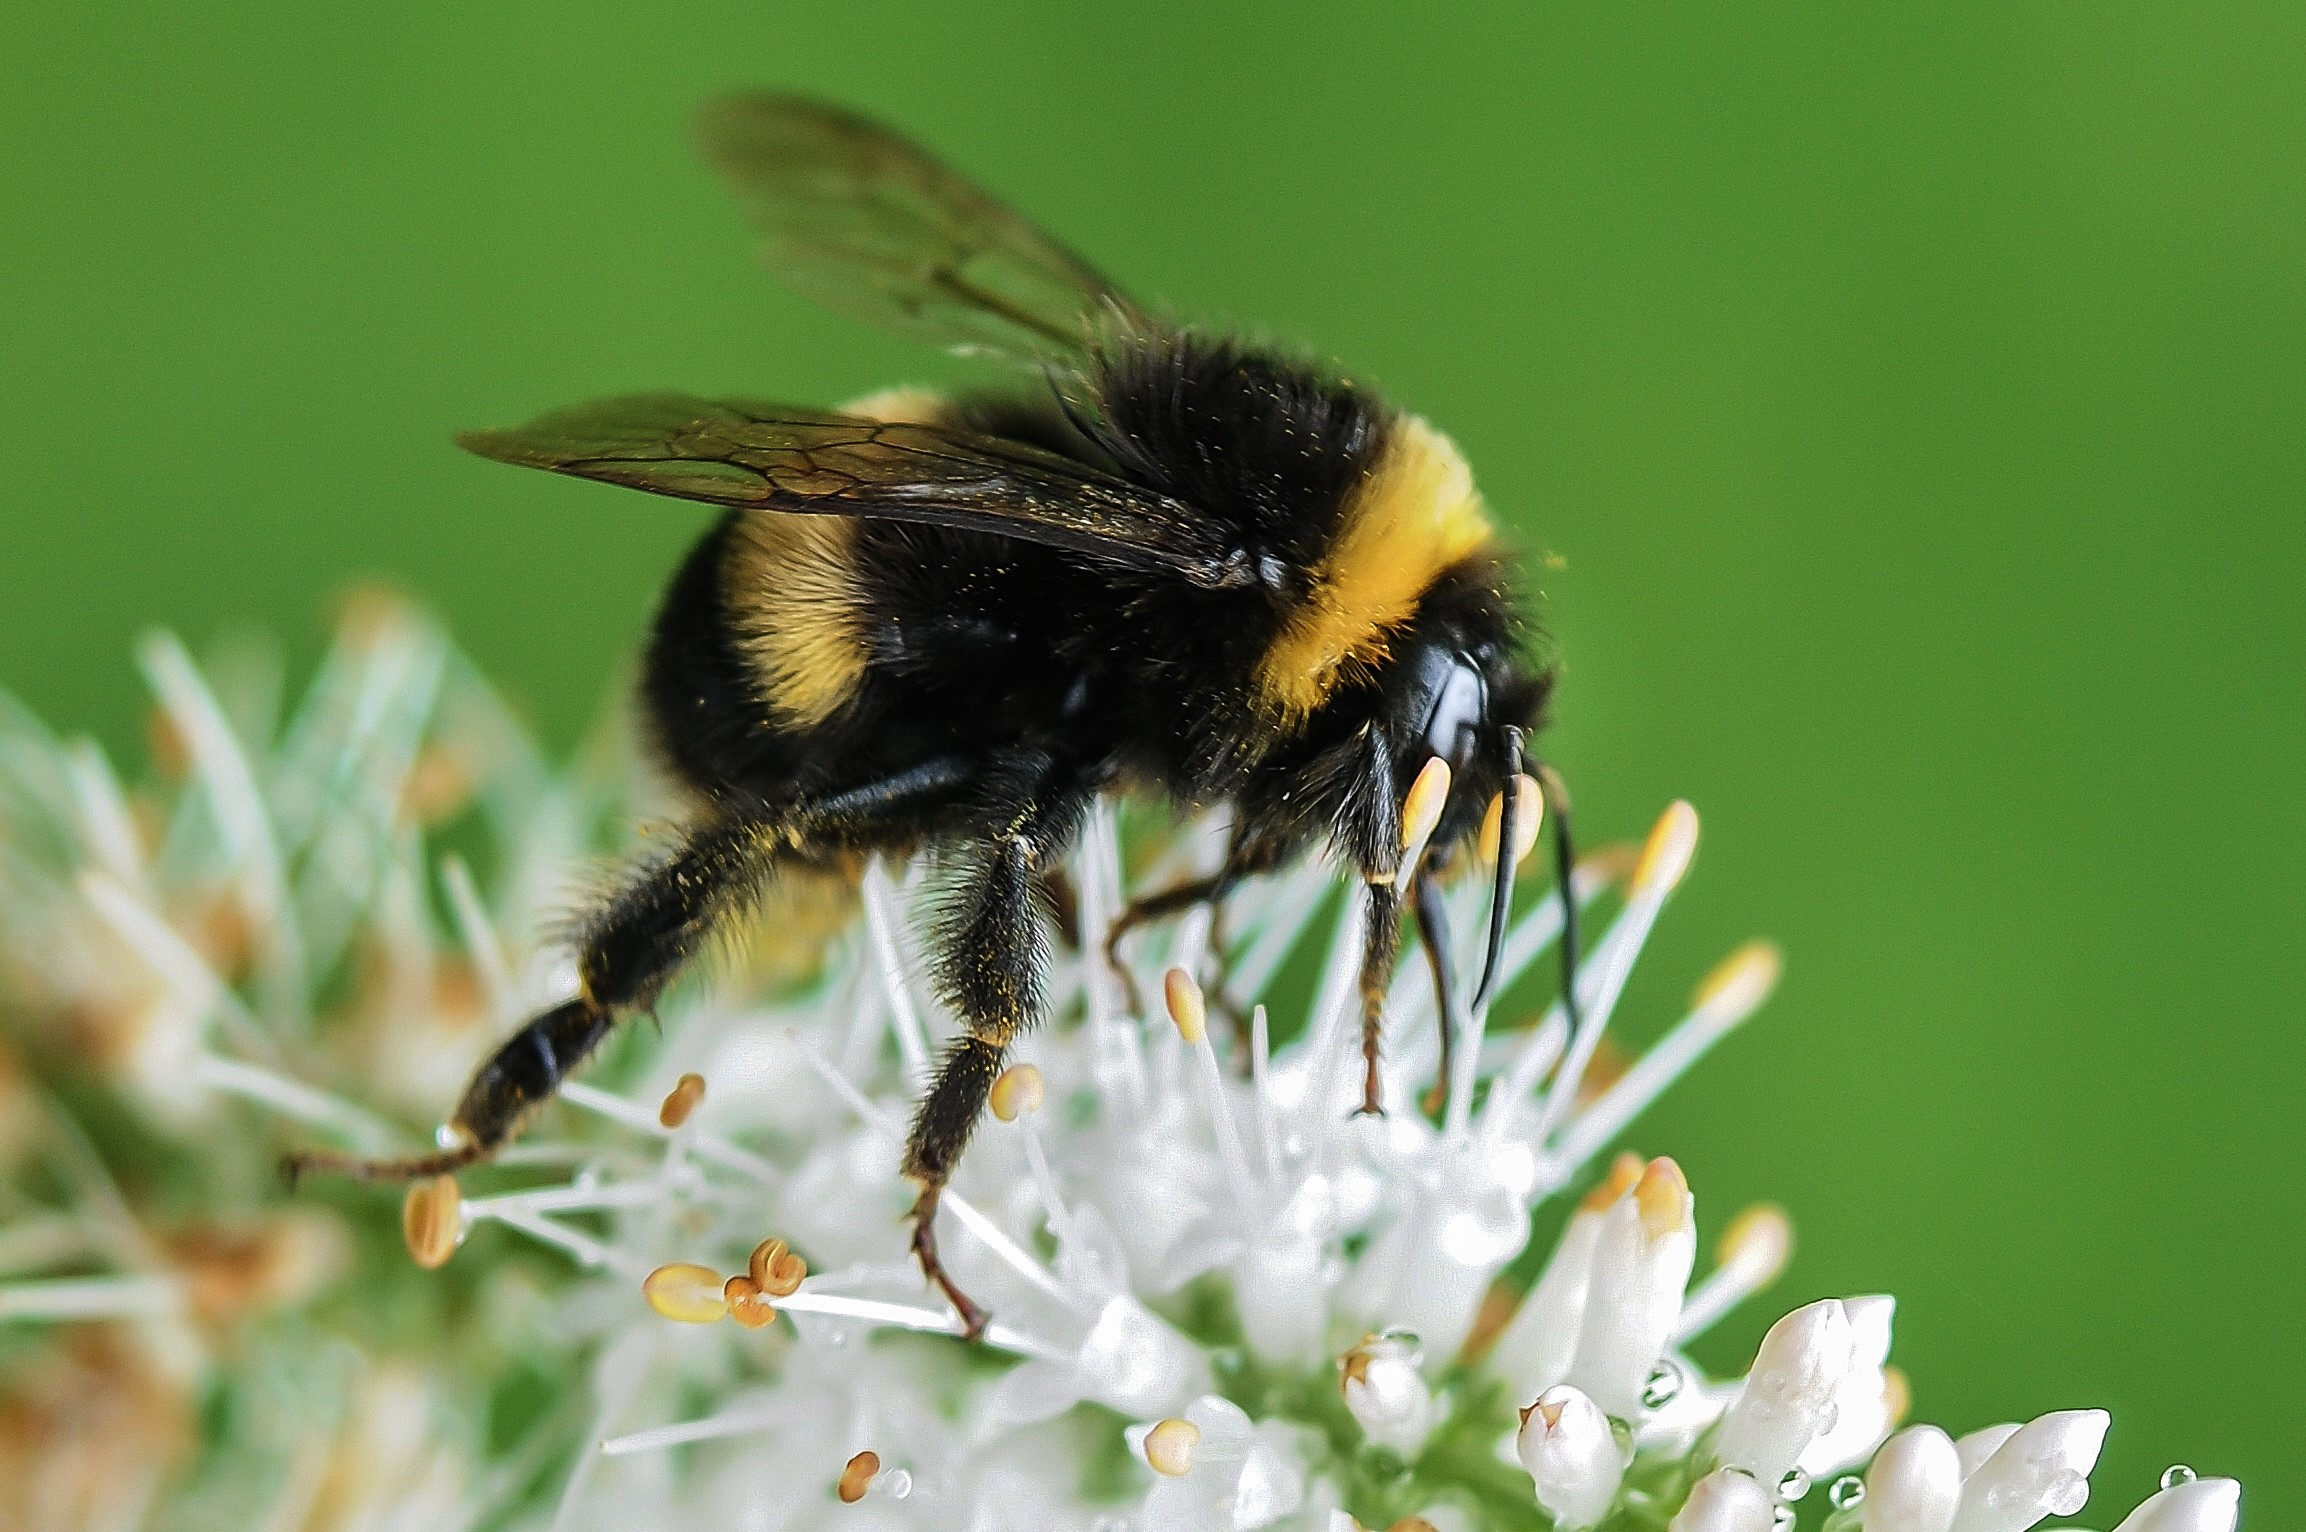 Free stock photo of bee bumblebee insect